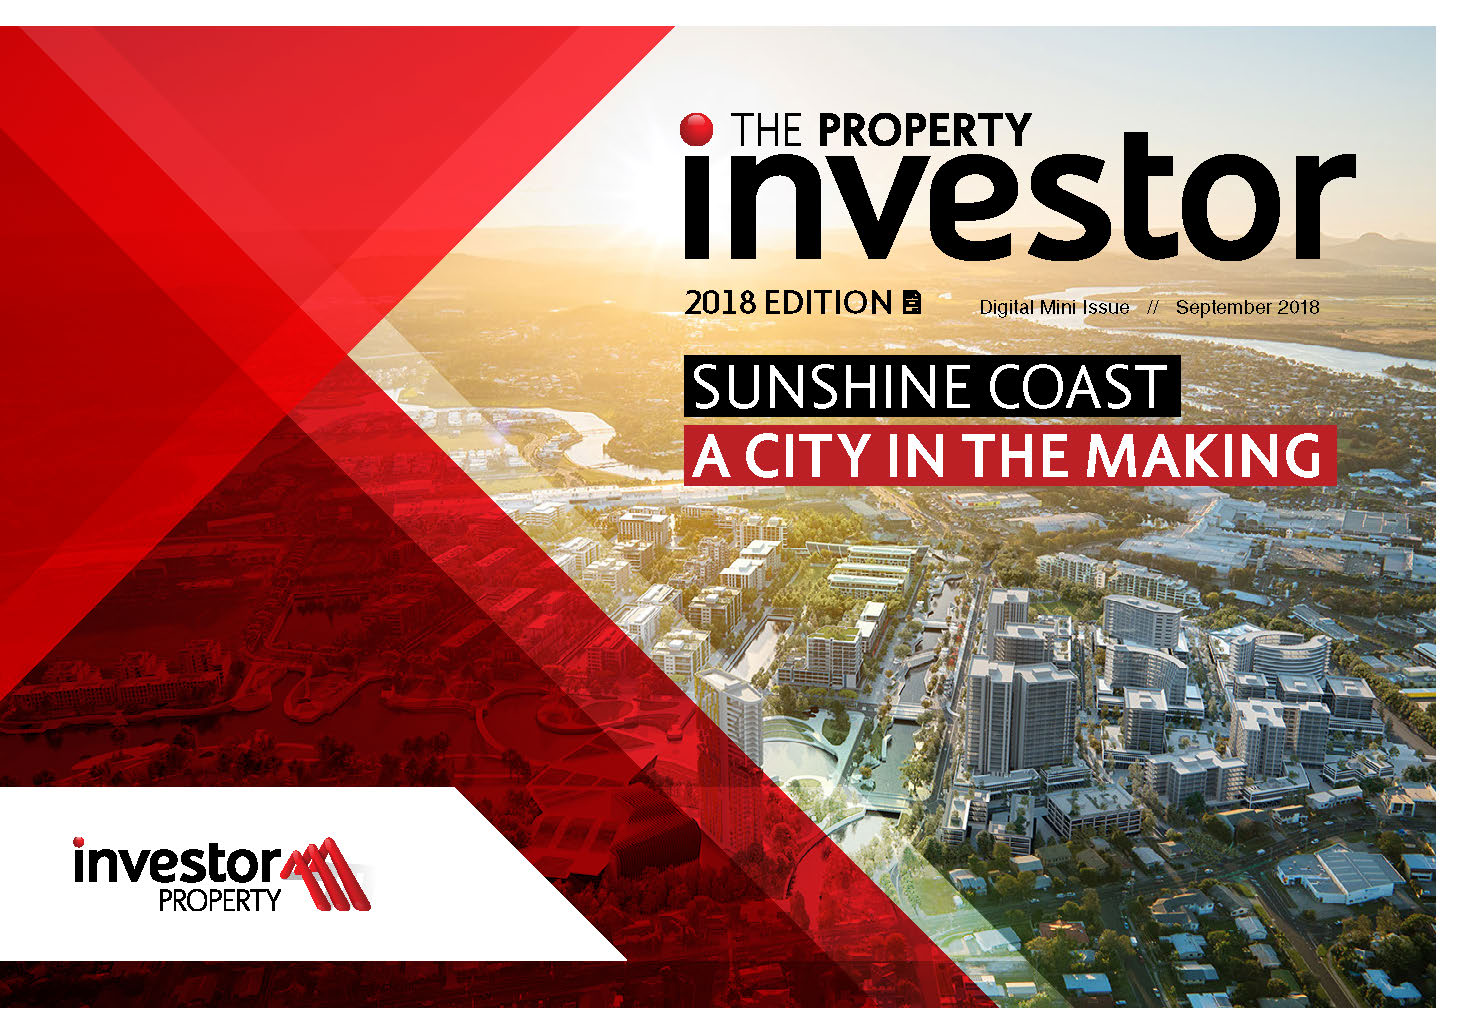 SUNSHINE COAST A CITY IN THE MAKING